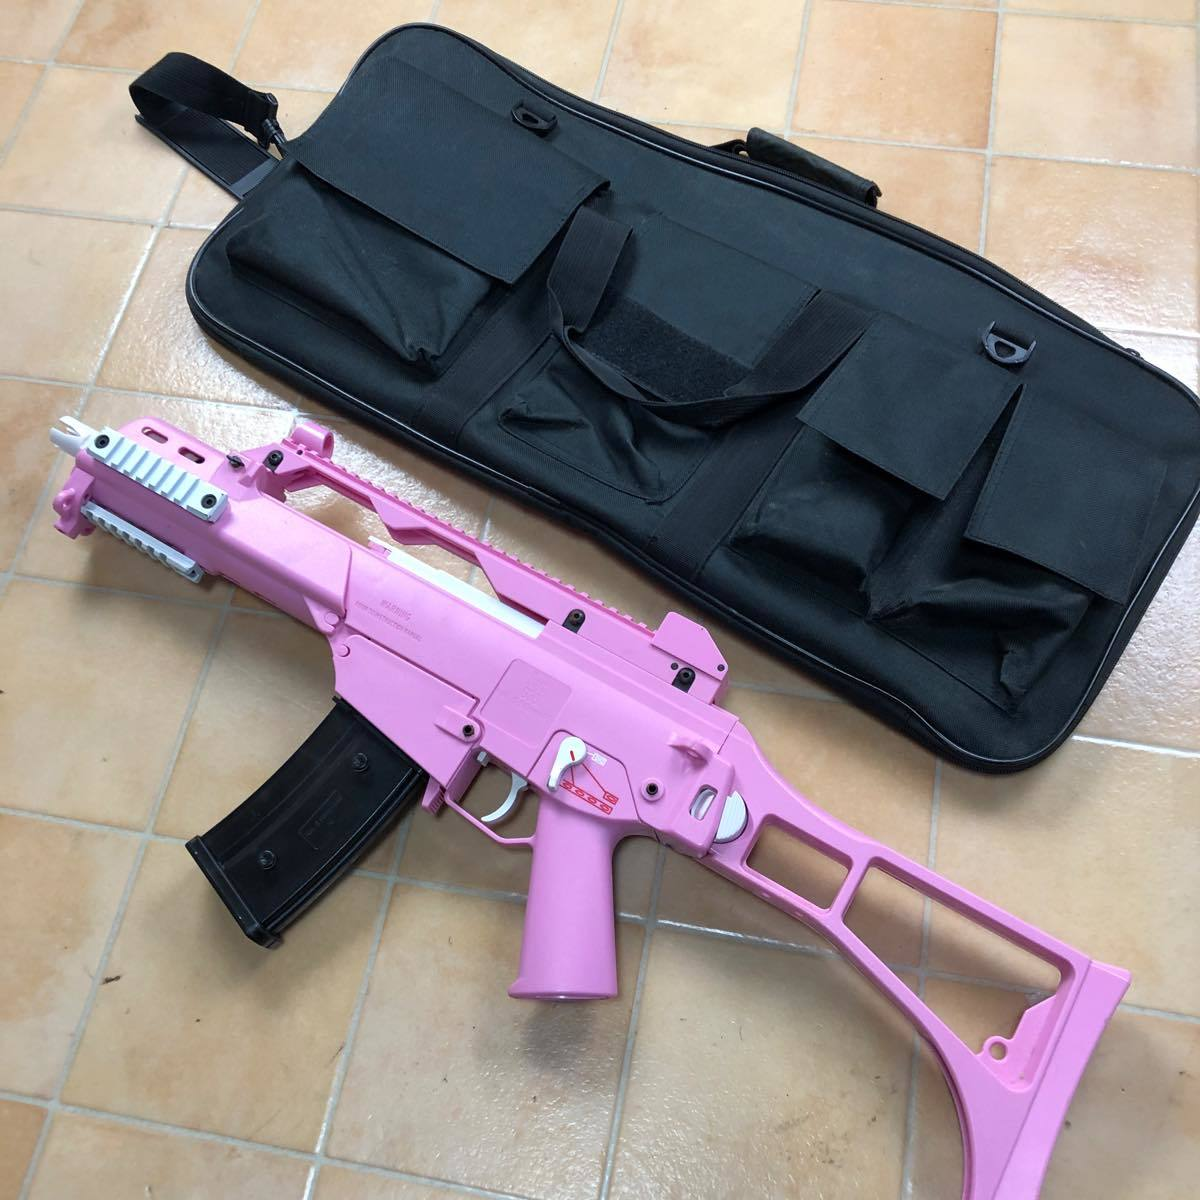 S&T G36C Competition 電動ガン Pink S&TAEG12PN  ピンク #906_画像2